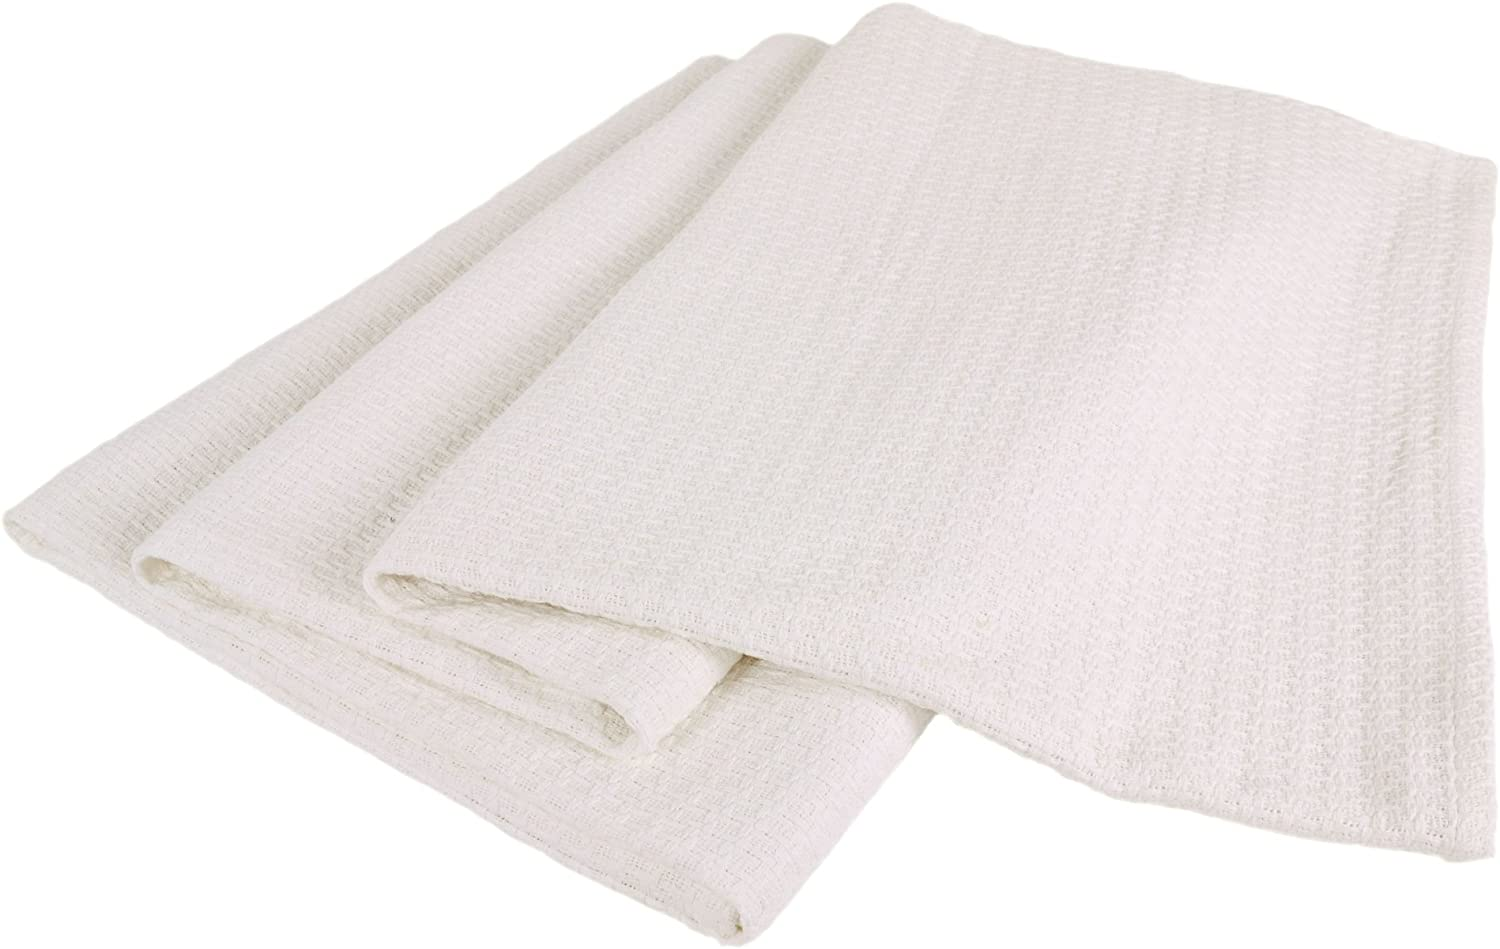 Elite Home Grand Hotel All-Natural 100-Percent Cotton Basket Woven Blanket Full/Queen Size, White